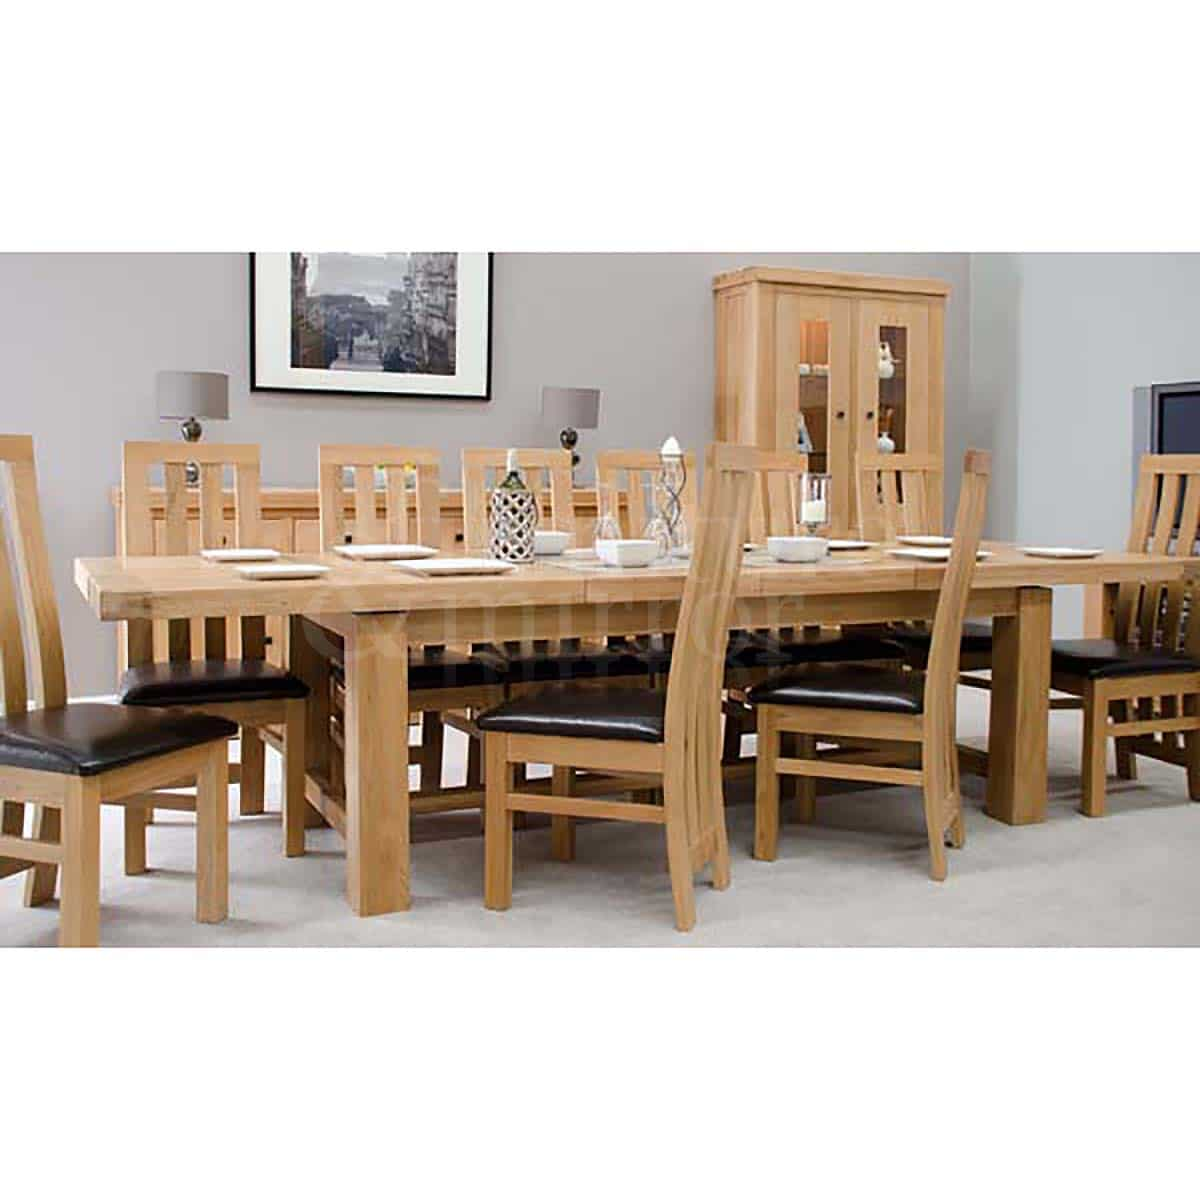 Chunky 14 seater dining table furniture and mirror for 14 seater dining table